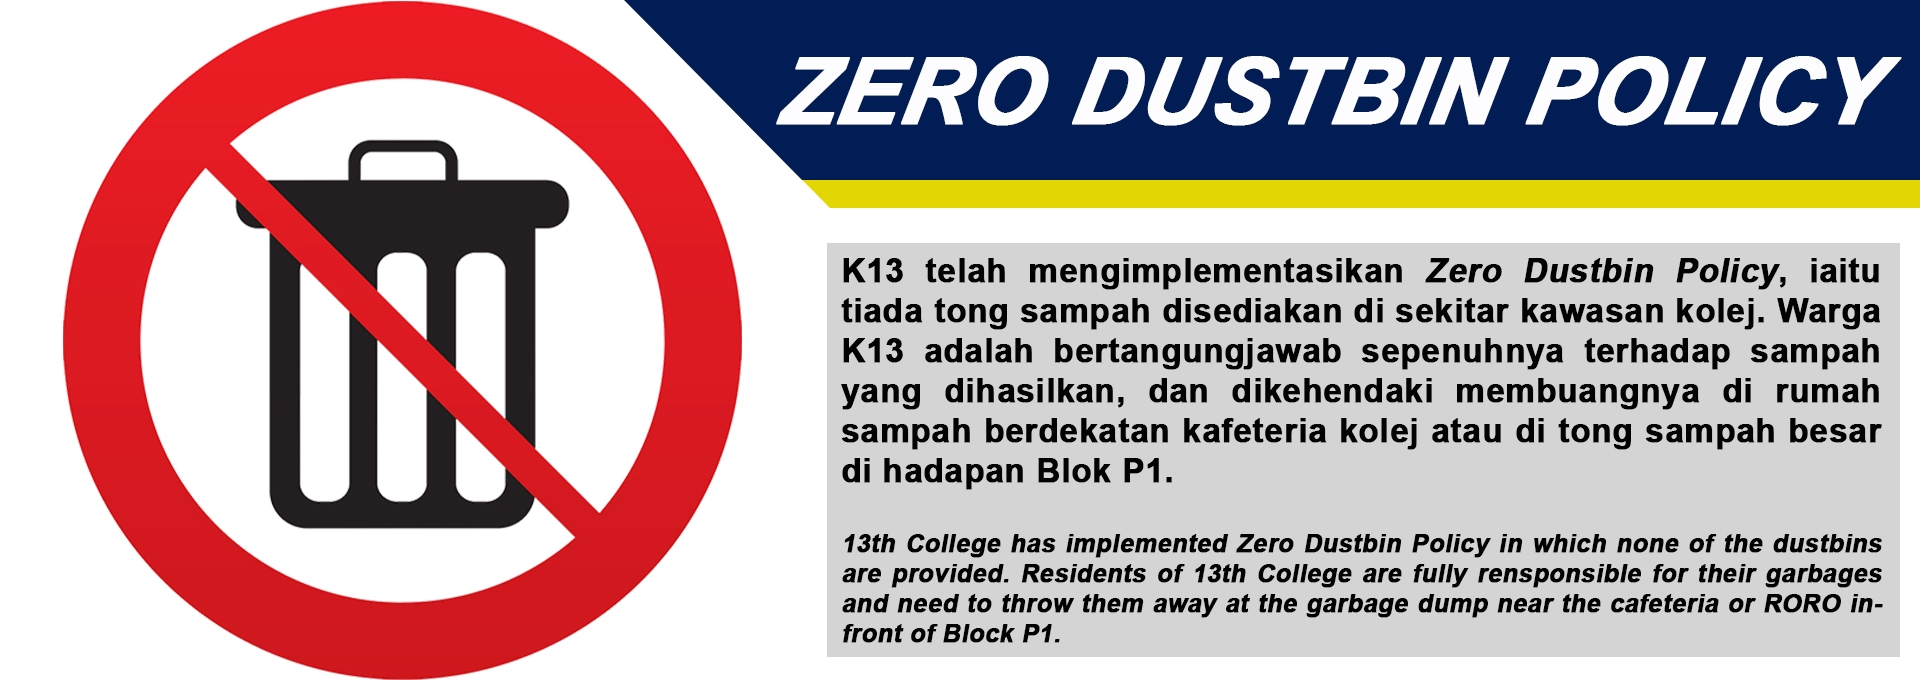 ZERO DUSTBIN POLICY